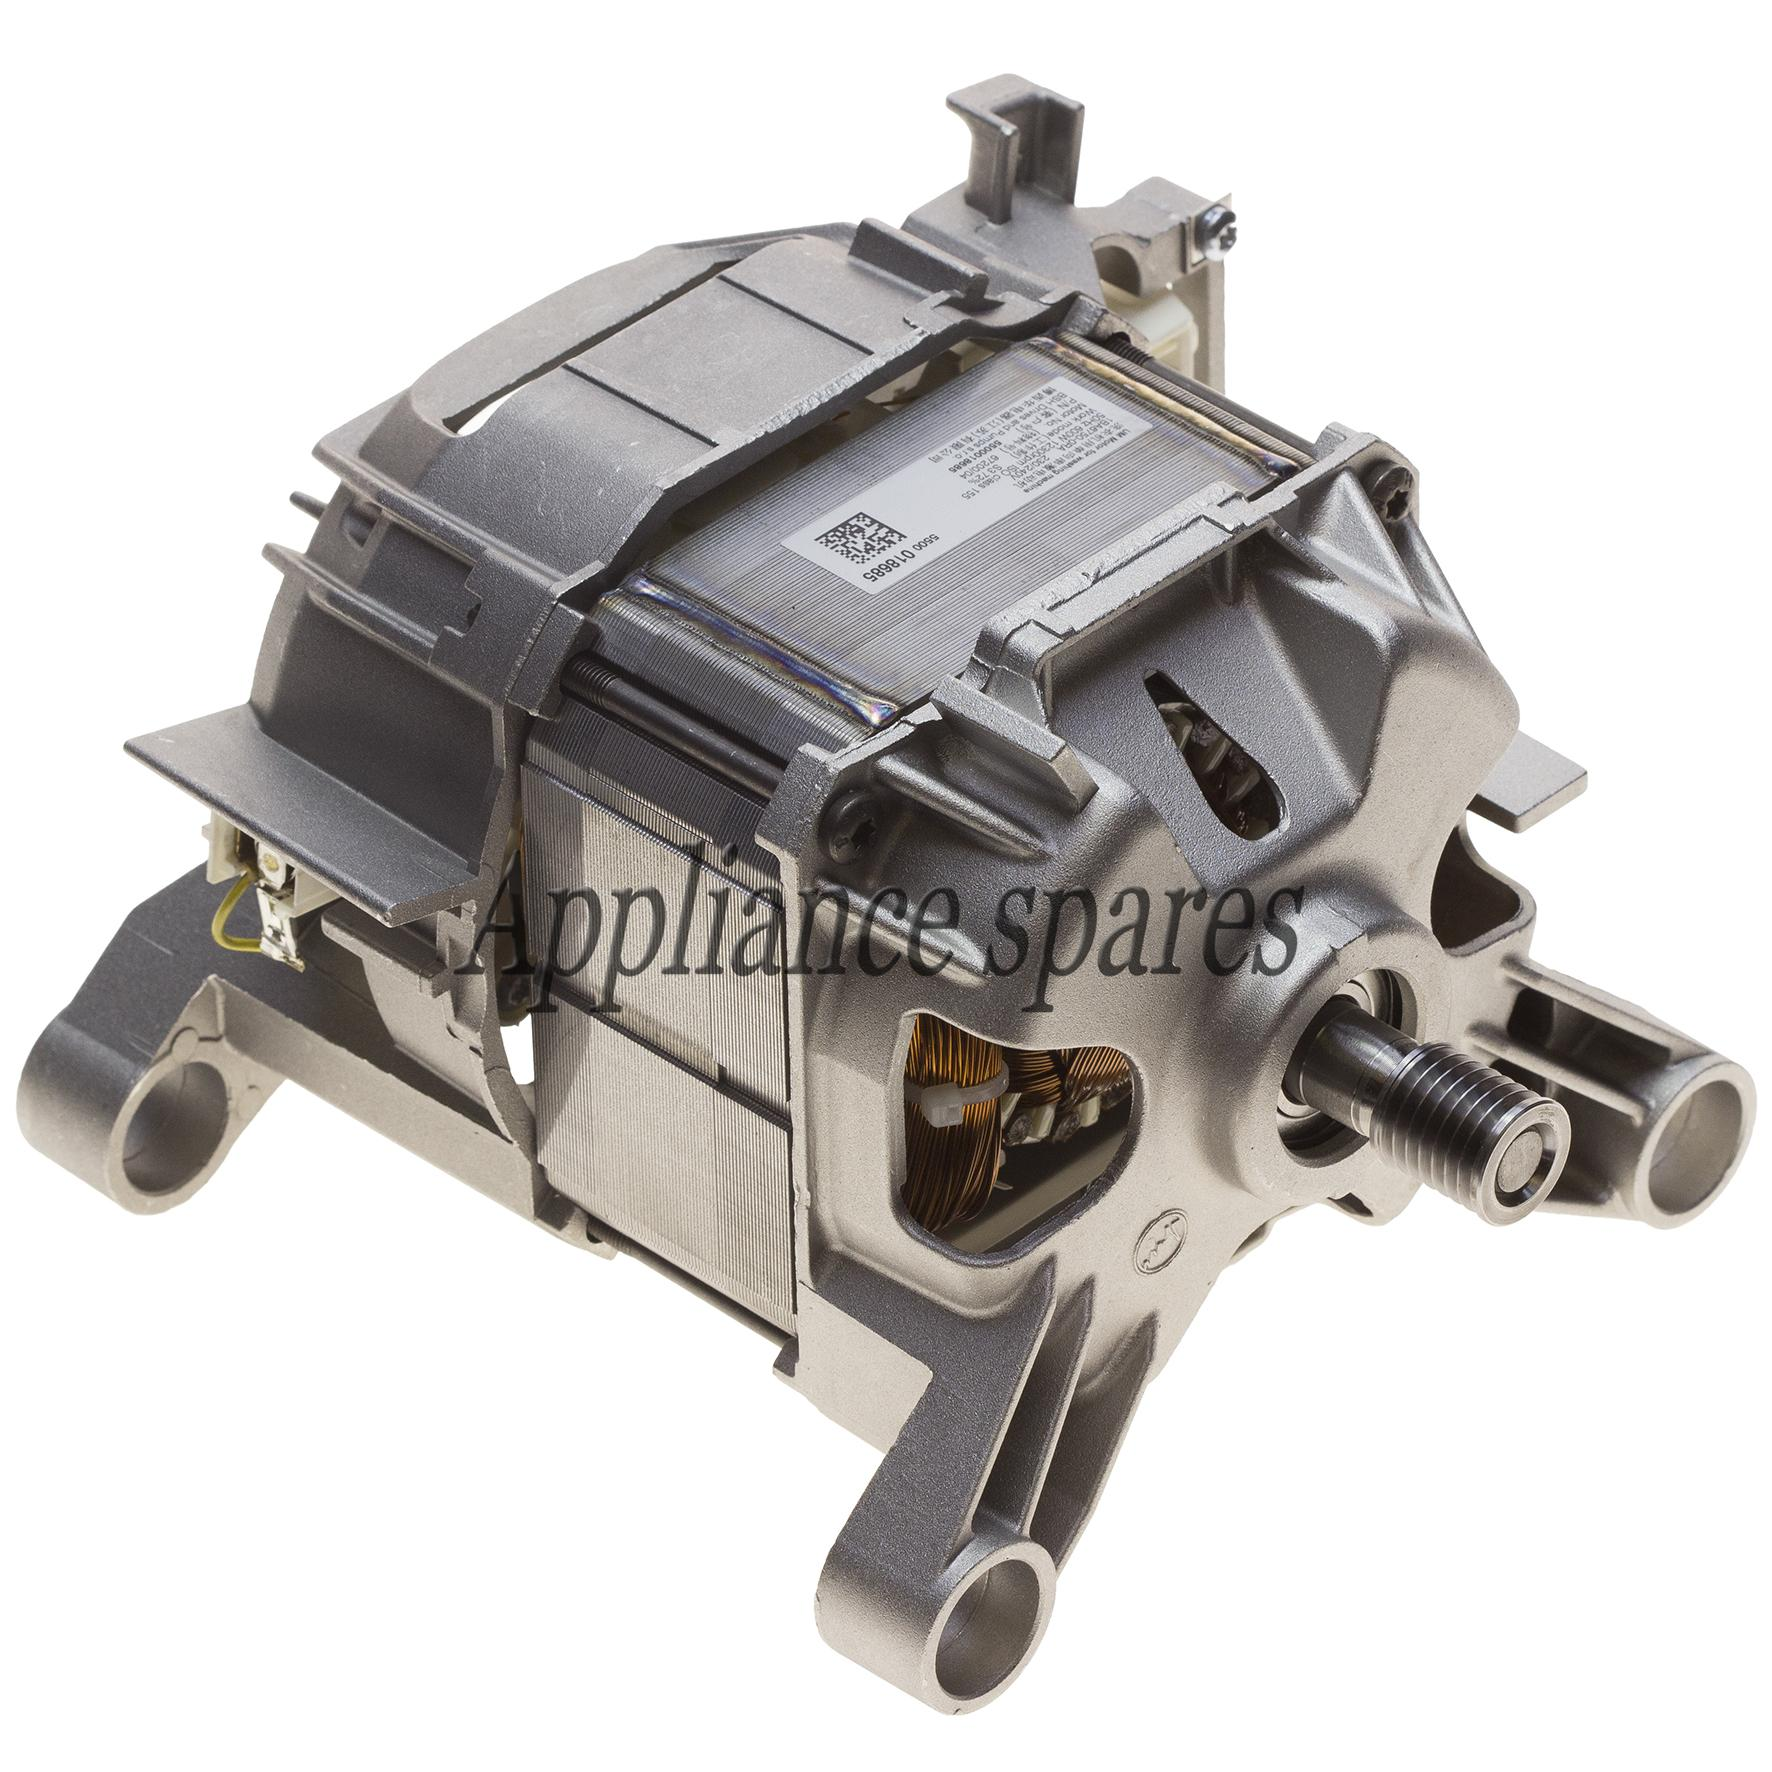 hight resolution of bosch front loader washing machine complete motor 1000 rpm 230v 50hz lategan and van biljoens appliance spares parts and accessories